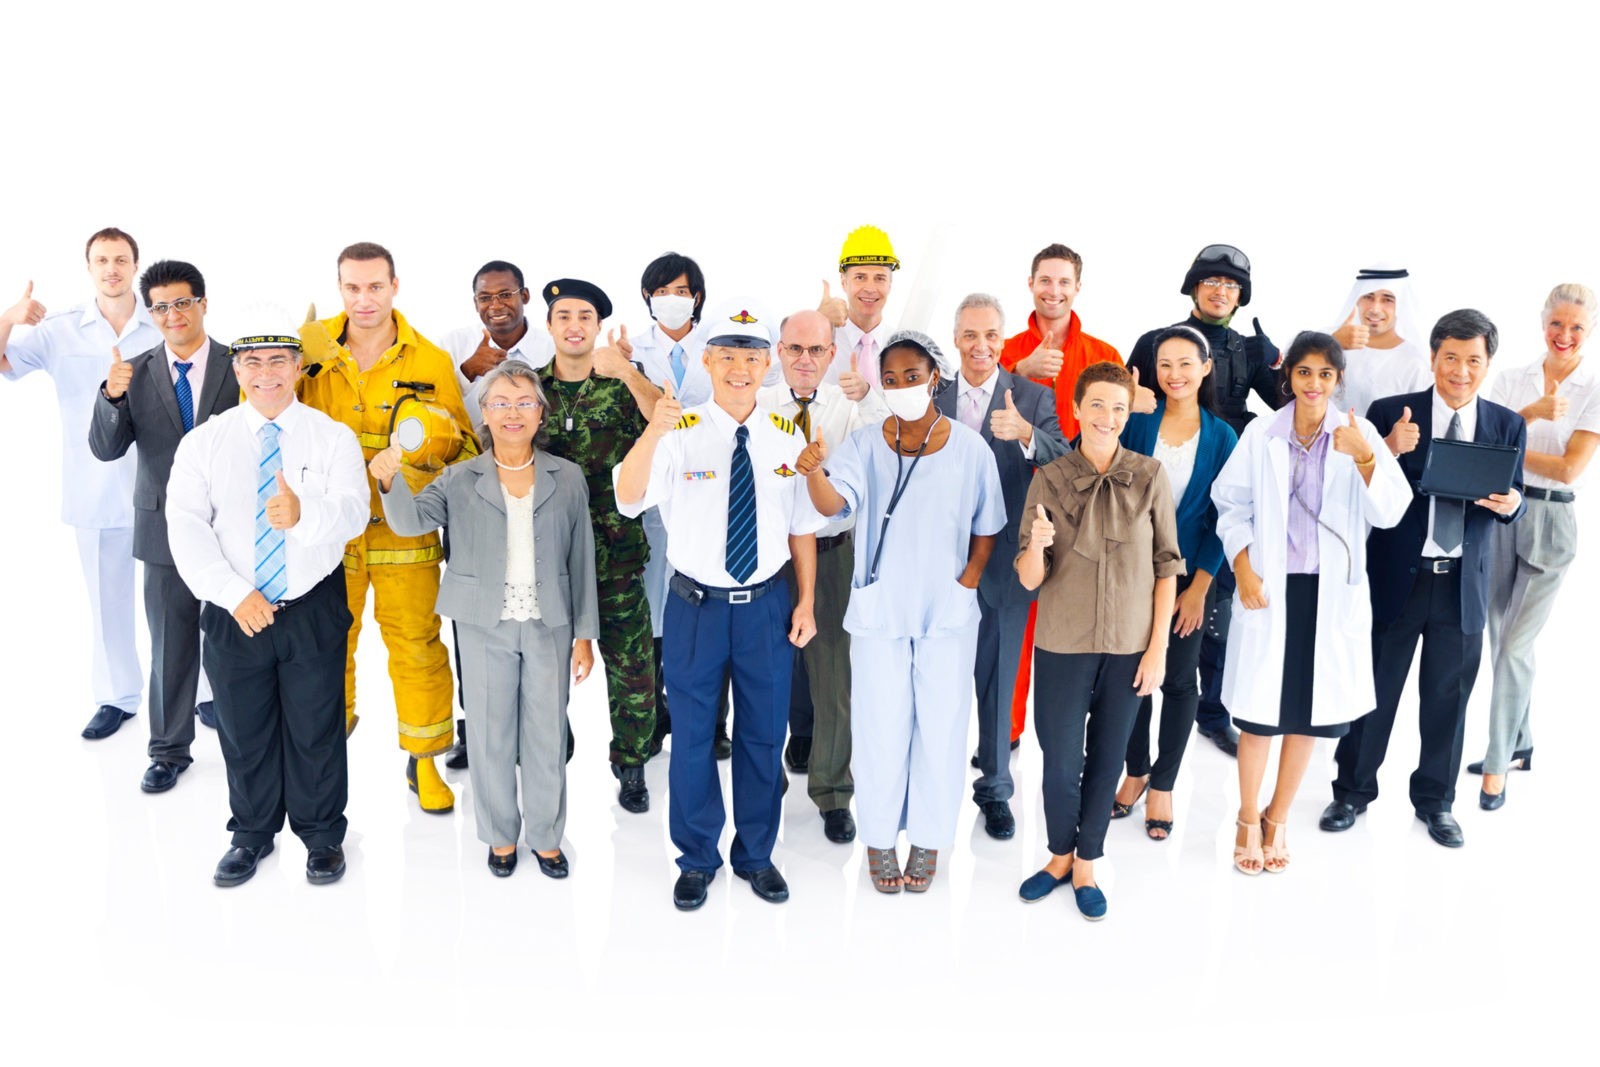 About - Group Of Smiling People From Various Professions Making Thumbs Up Gesture